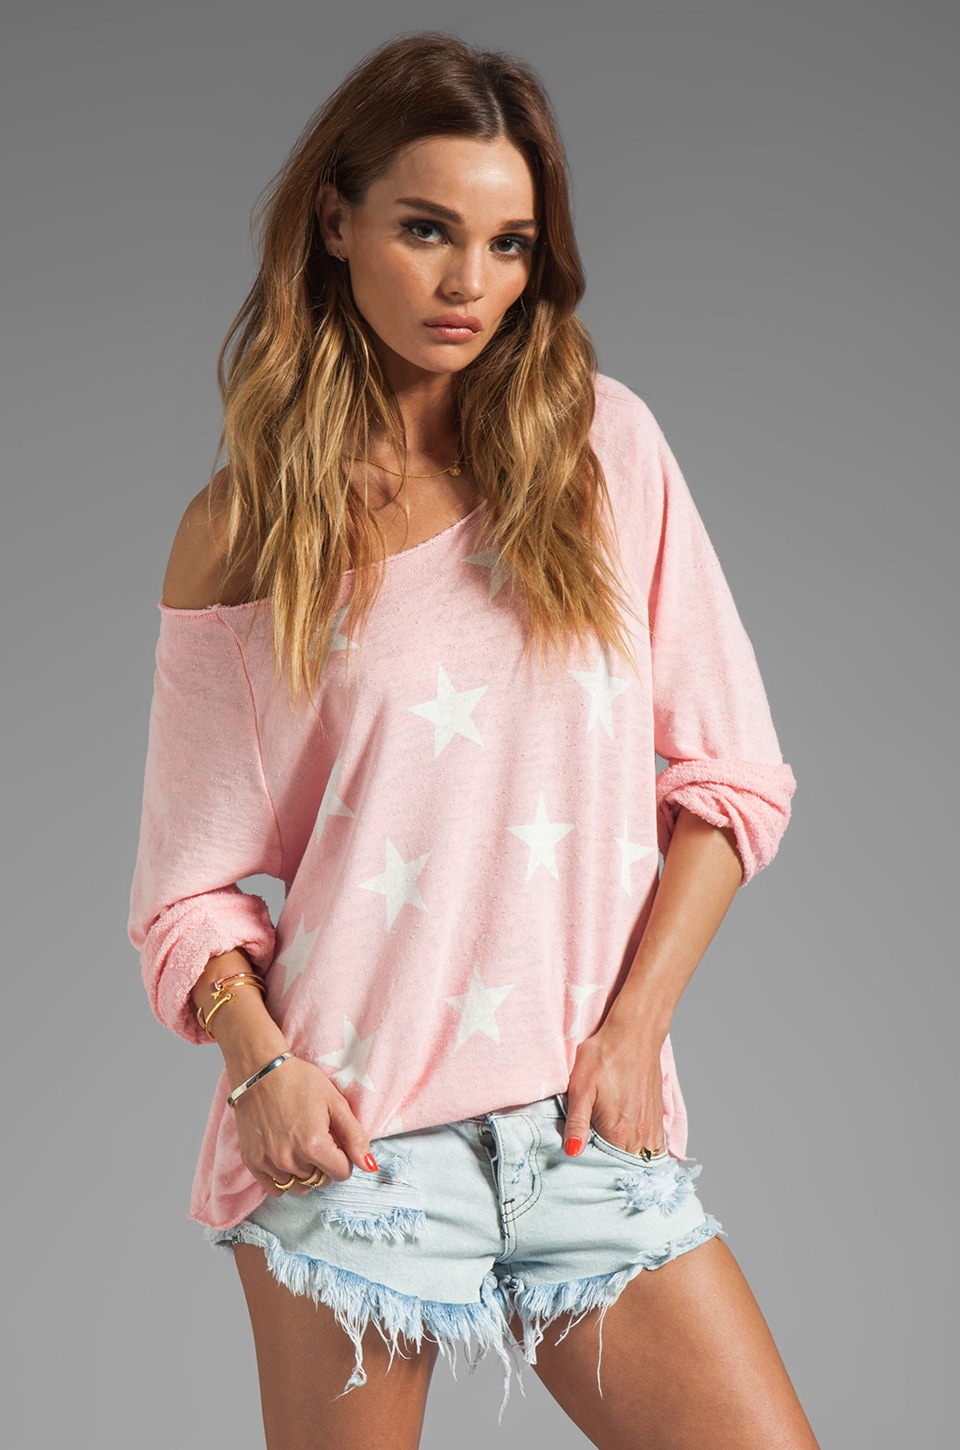 Wildfox Couture Jazzercise Stars Off the Shoulder Sweatshirt in Teen Dream